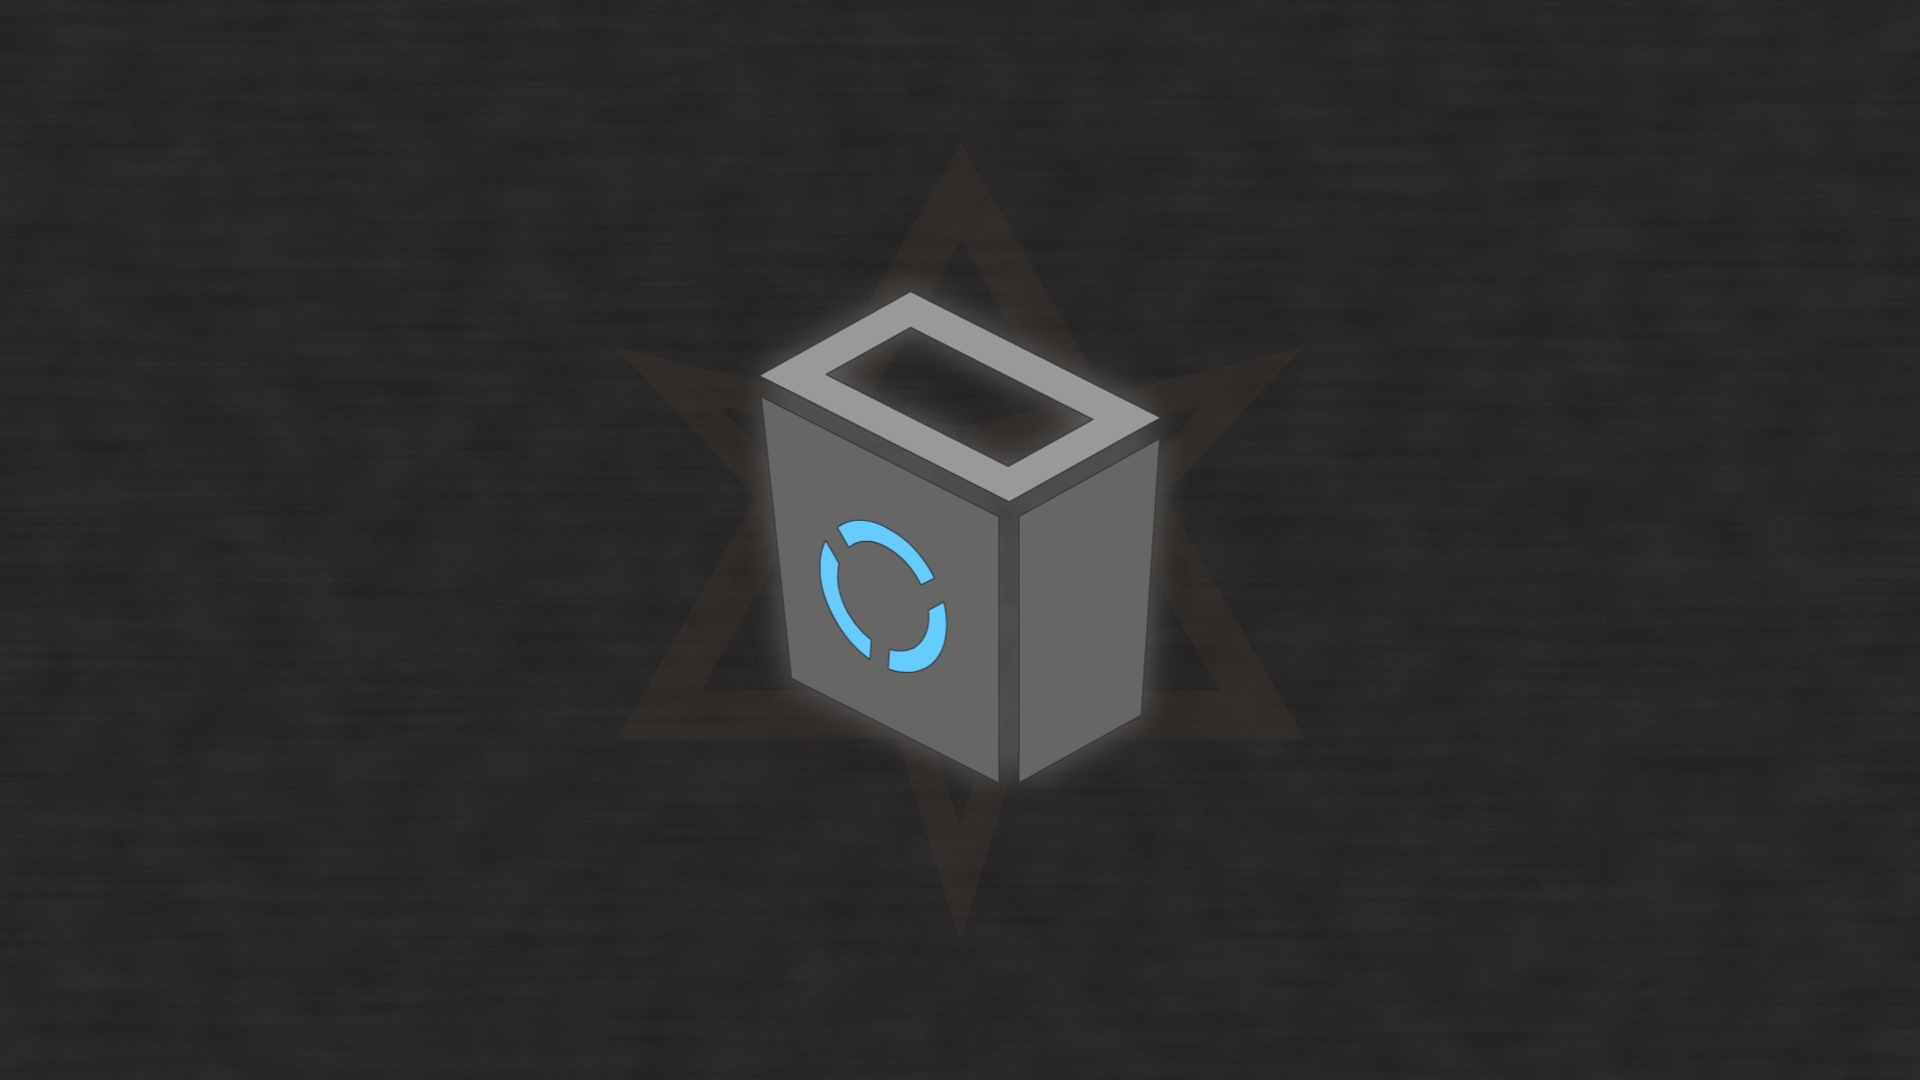 Icon for What a hole